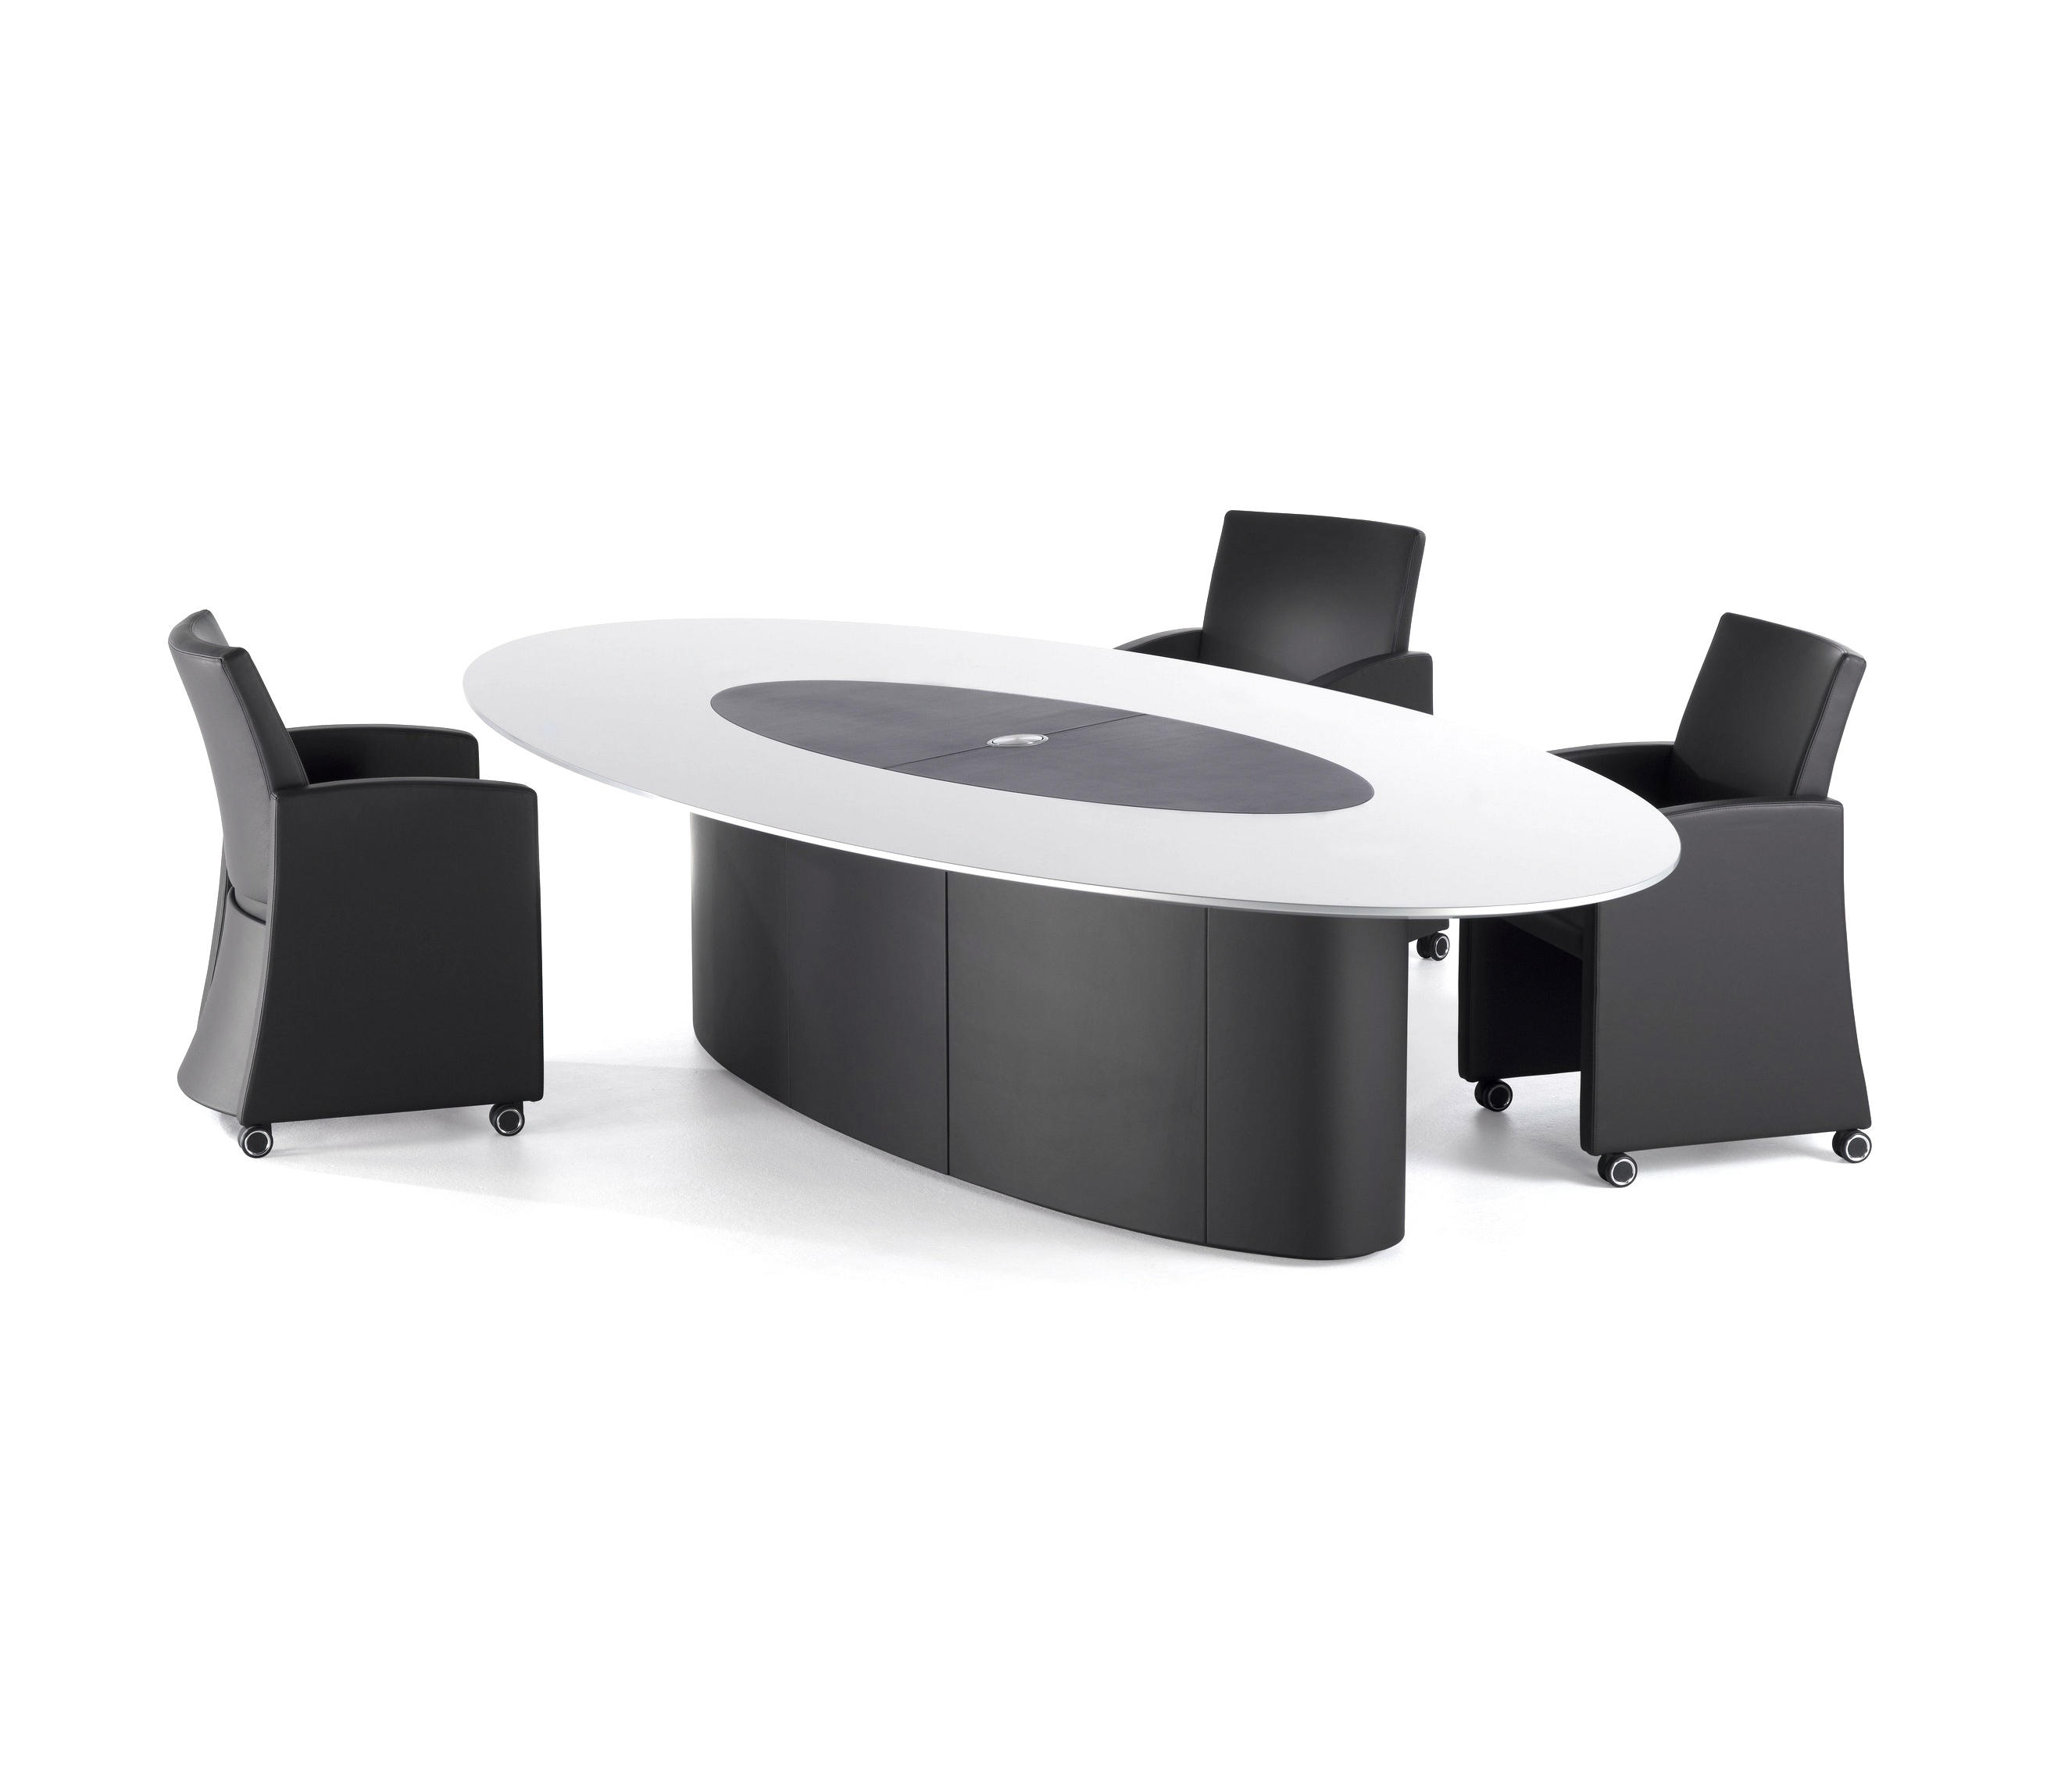 Besprechungstisch Oval Sitag Customized Oval Conference Table Special